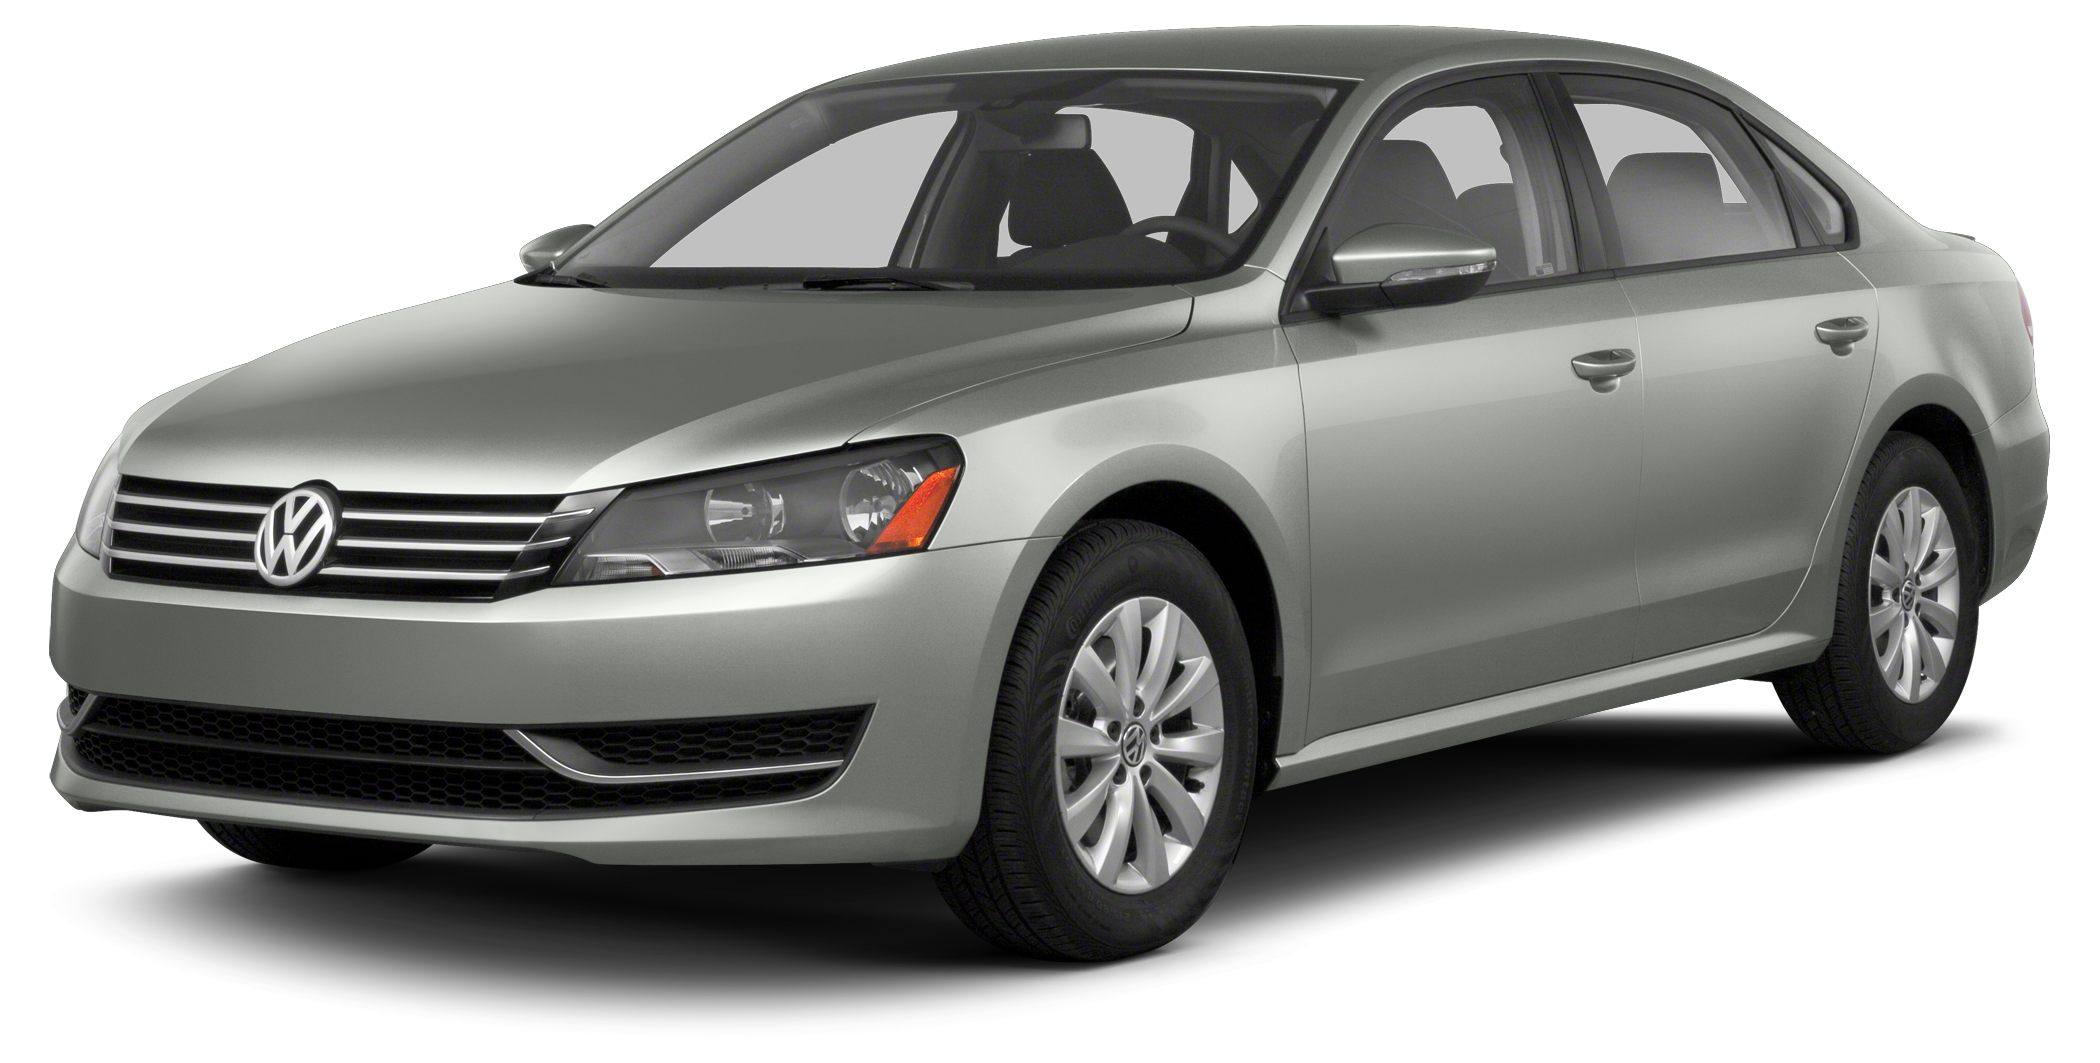 2013 Volkswagen Passat 25 SE Motors Northwest is honored to present a wonderful example of pure v